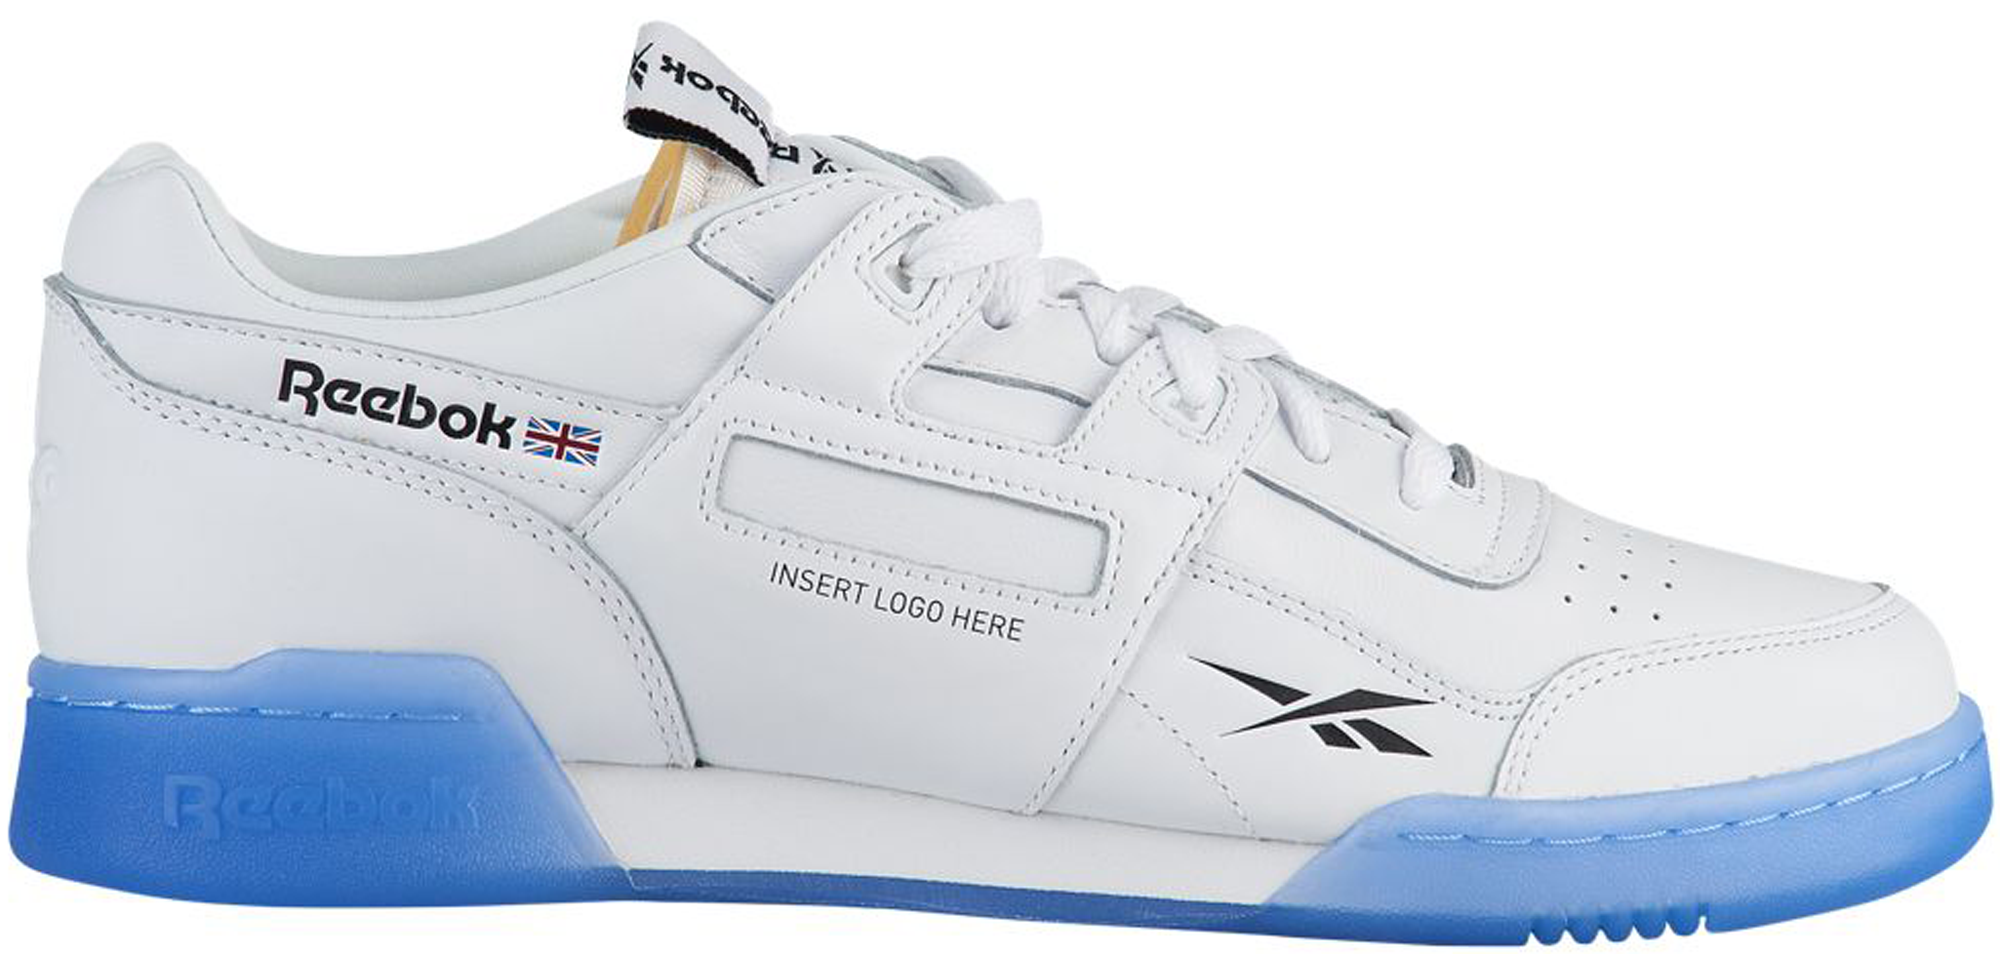 Reebok Workout Plus 3:AM NOLA